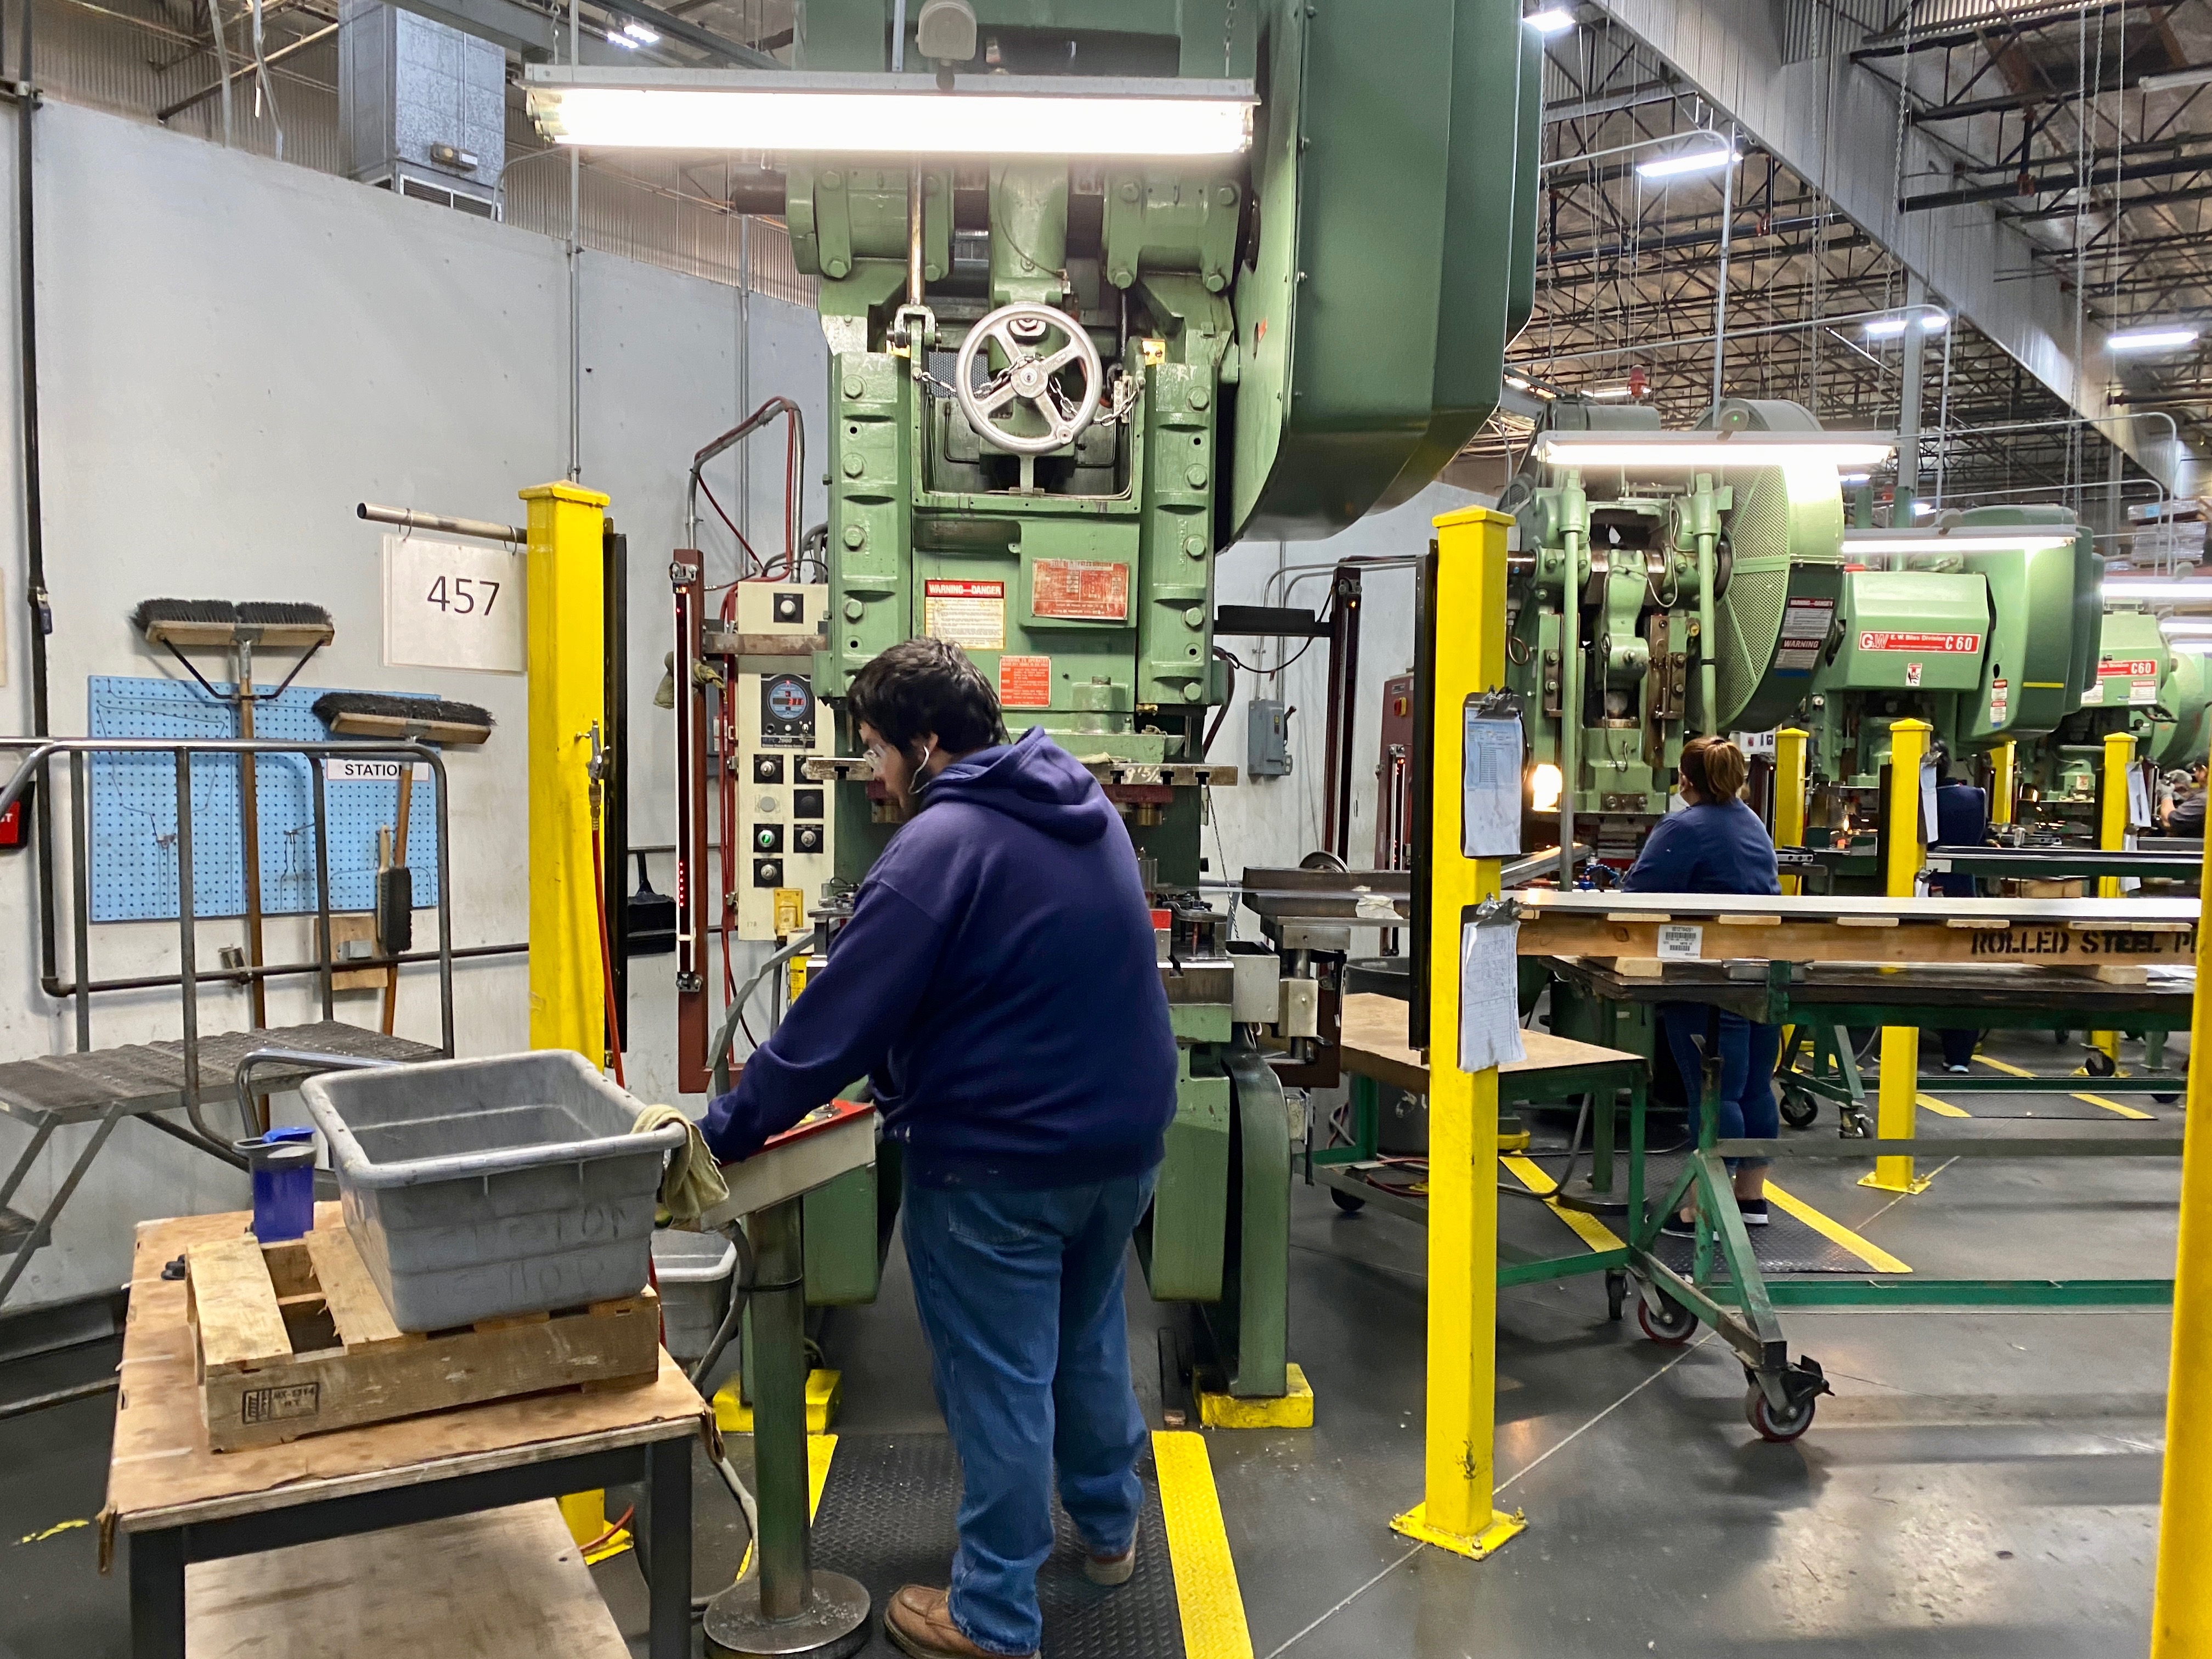 Fender machinists operating machines at its Corona factory